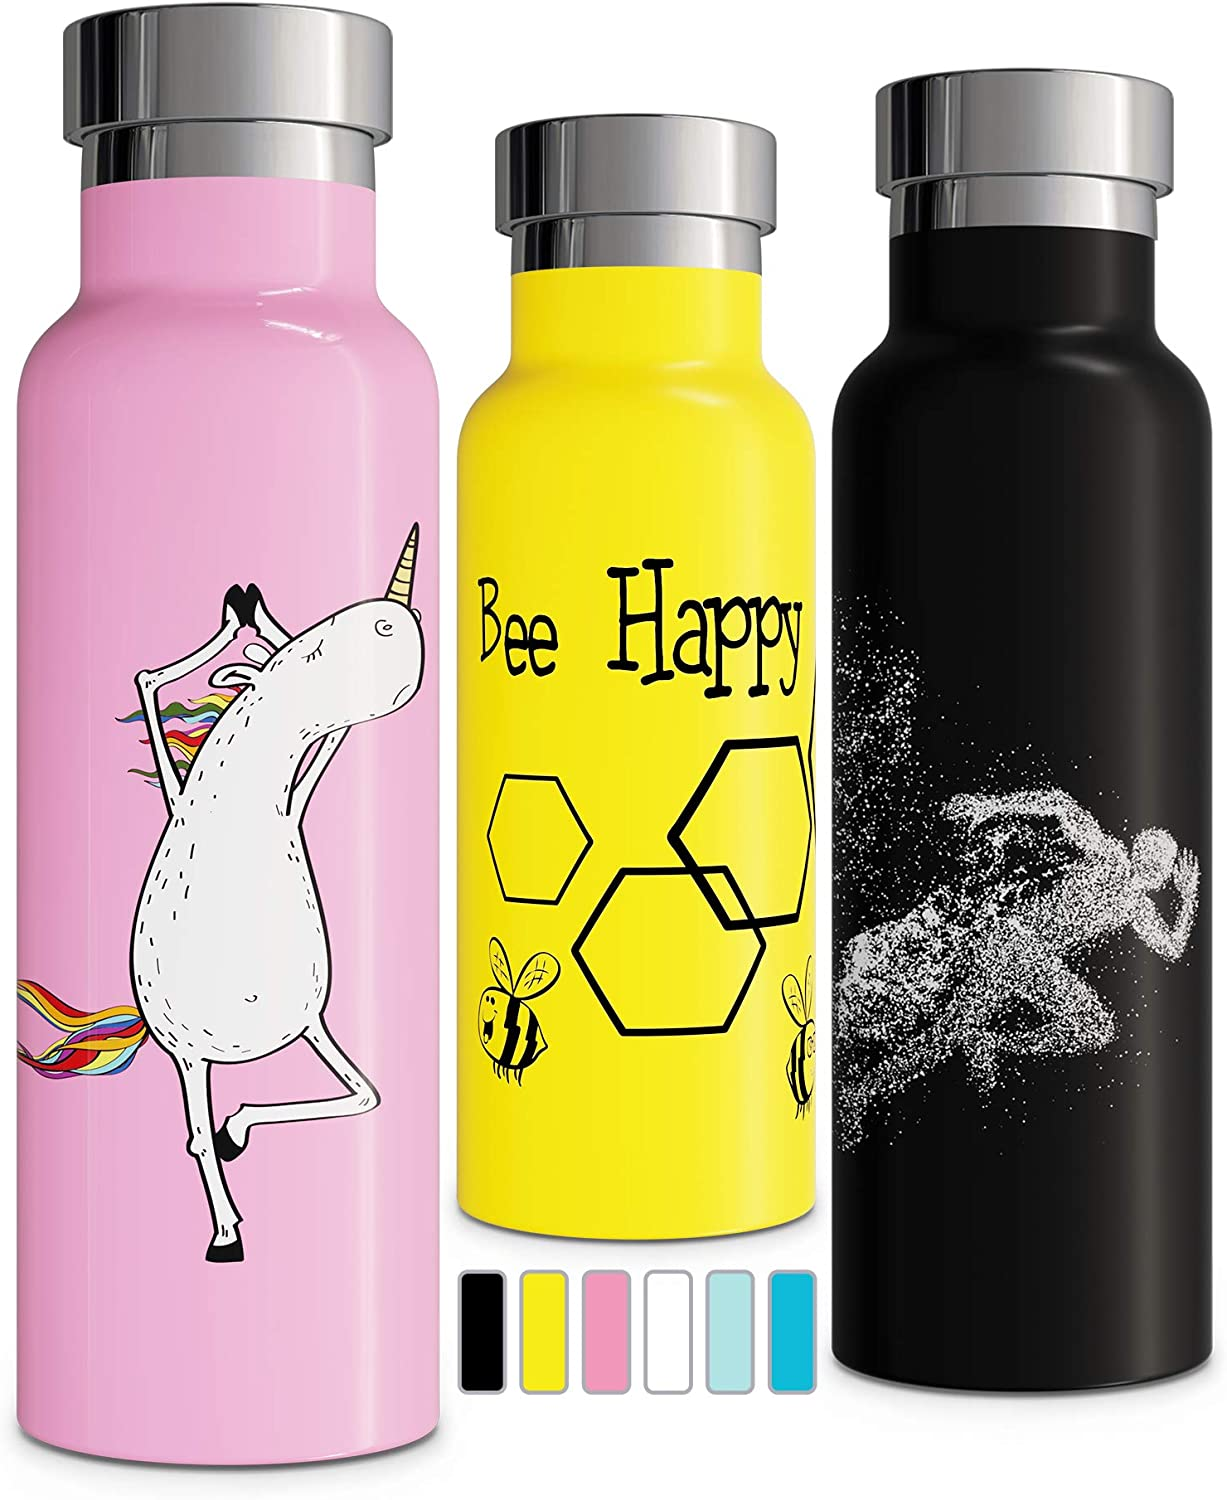 Vacuum Insulated Water Bottle   Double Walled Stainless Steel Eco-Friendly Leak Proof Sweat Free Durable Powder Coated 17oz   20oz   25oz Thermos   Keeps Cold 24 Hours, Hot 12 Hours